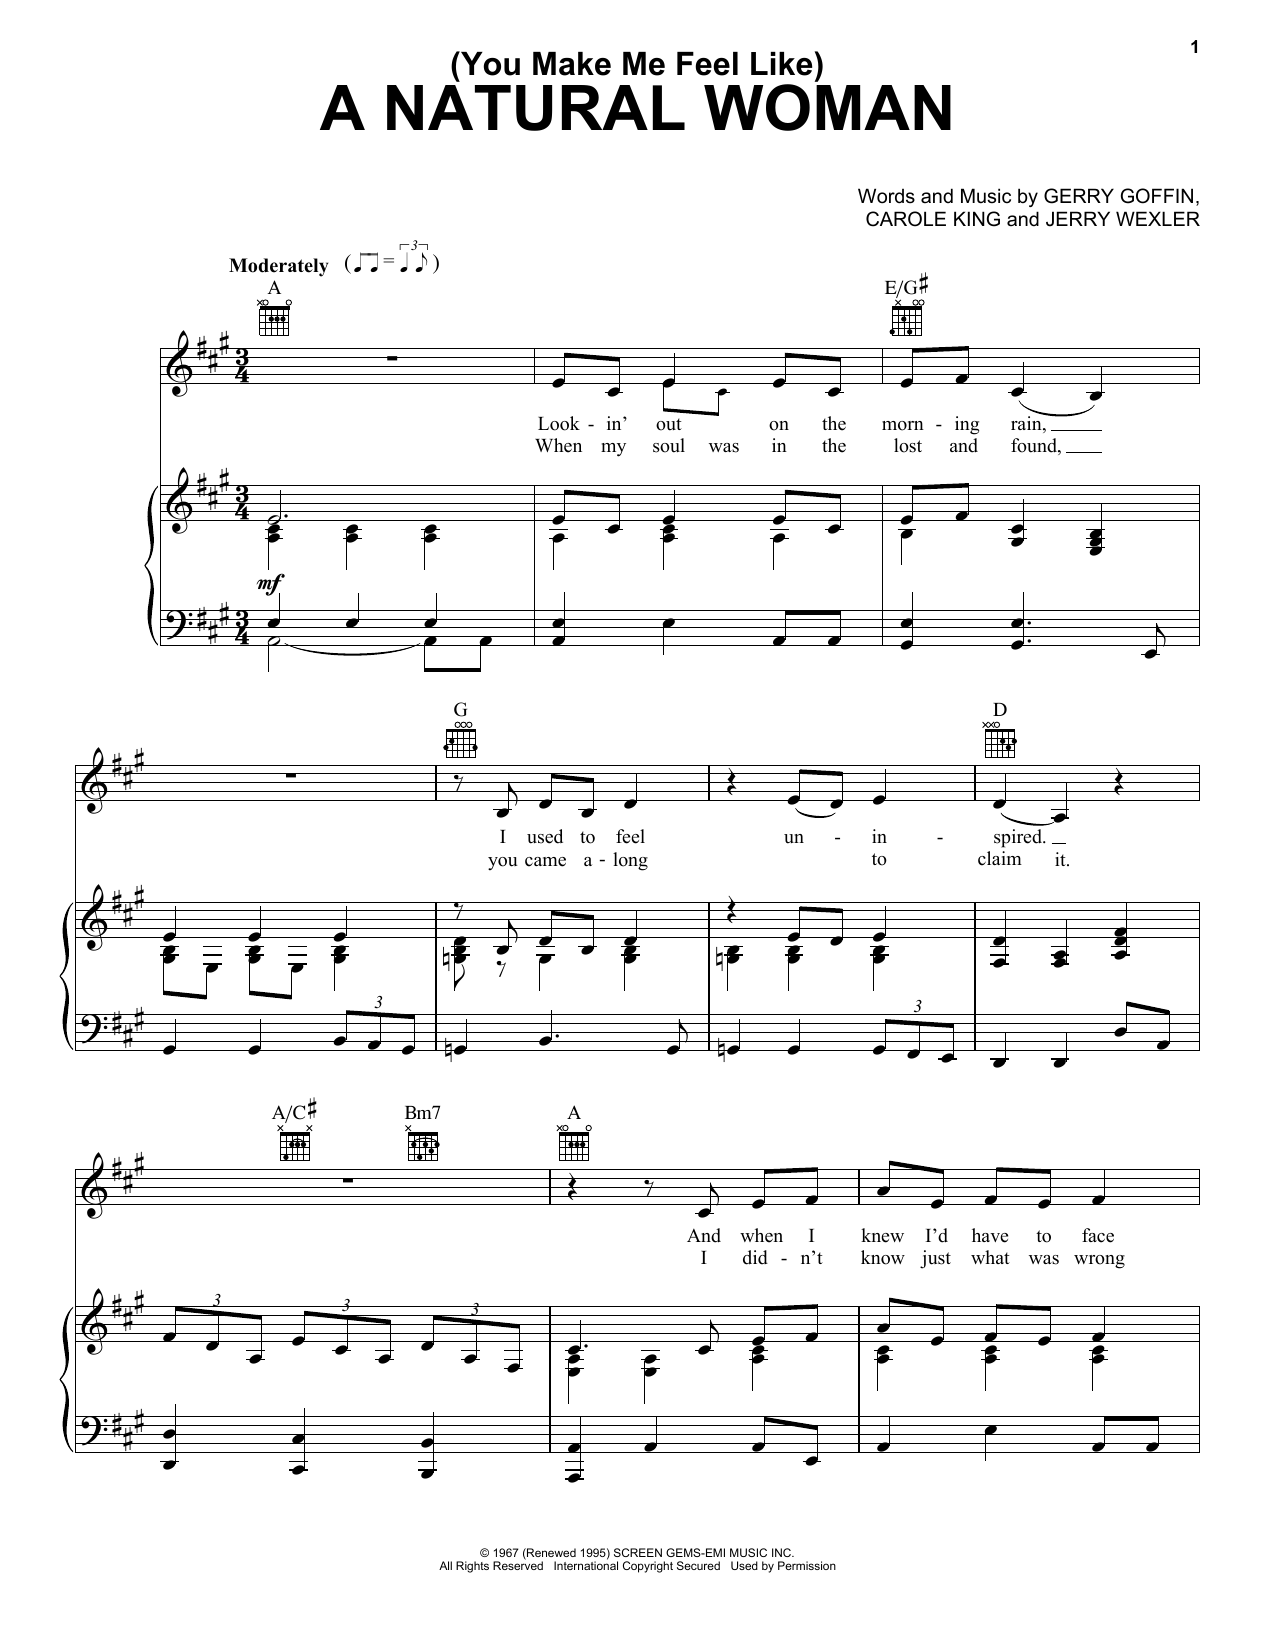 Aretha Franklin (You Make Me Feel Like) A Natural Woman sheet music notes and chords. Download Printable PDF.